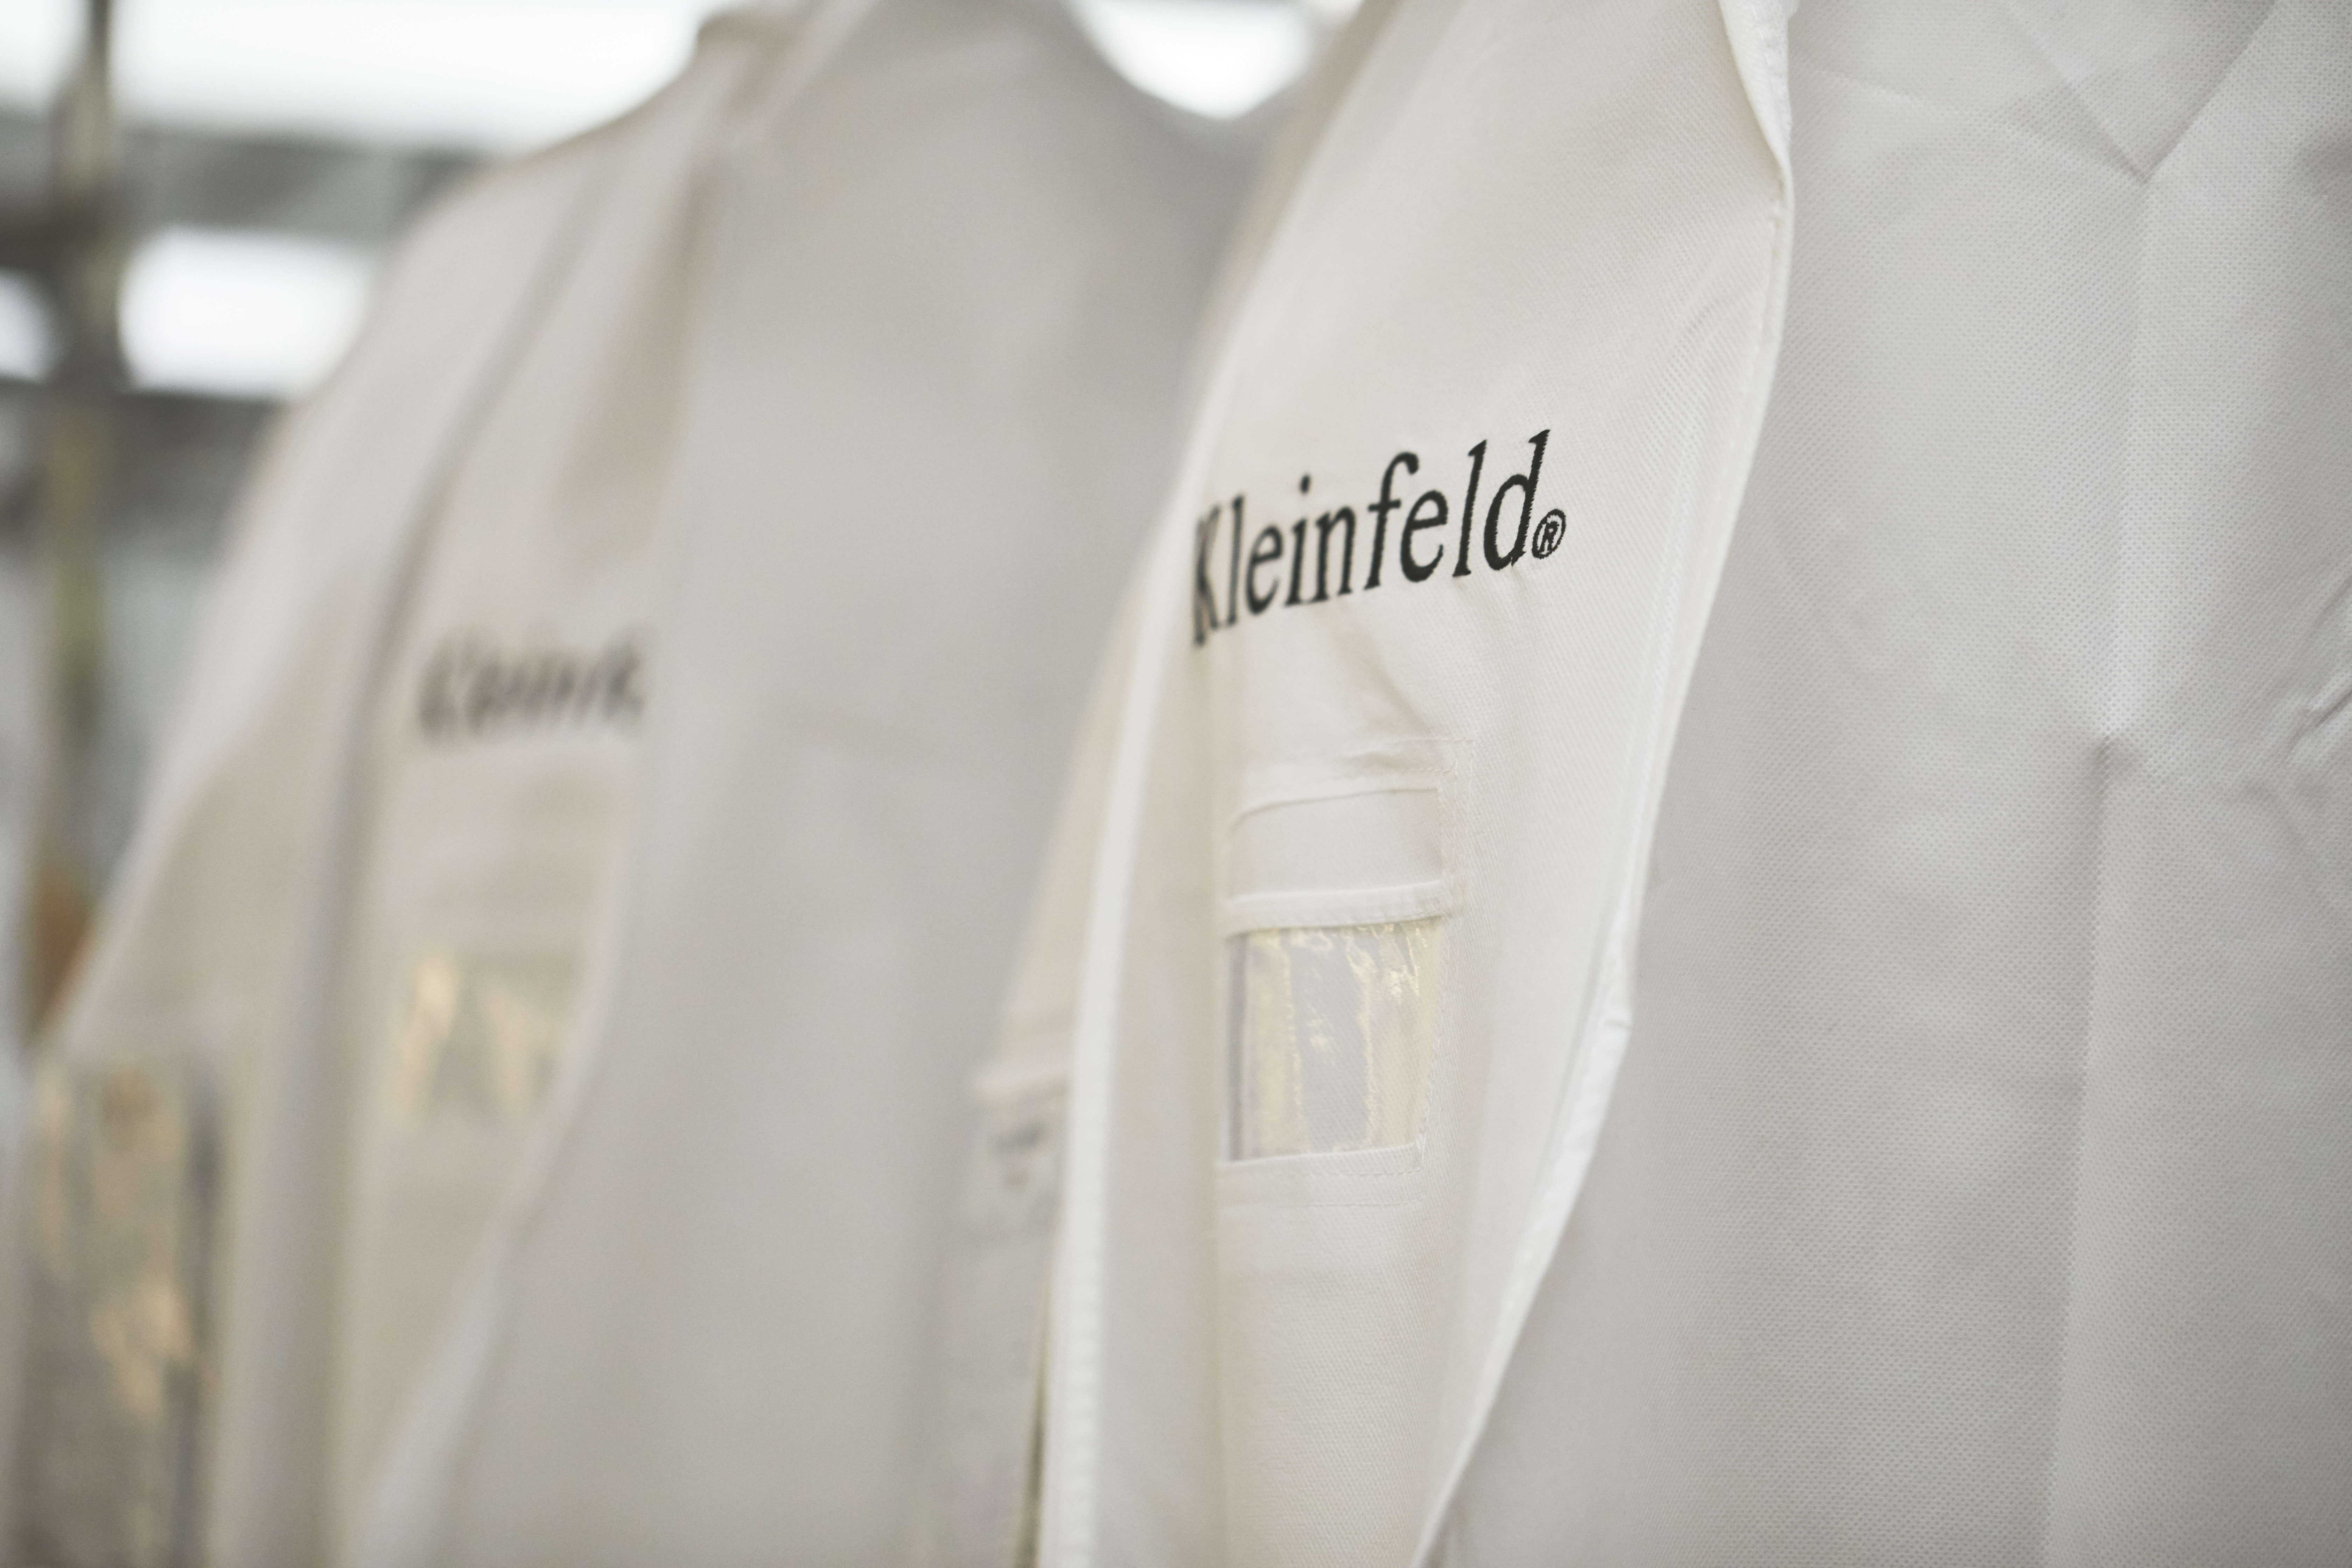 Kleinfeld Alterations